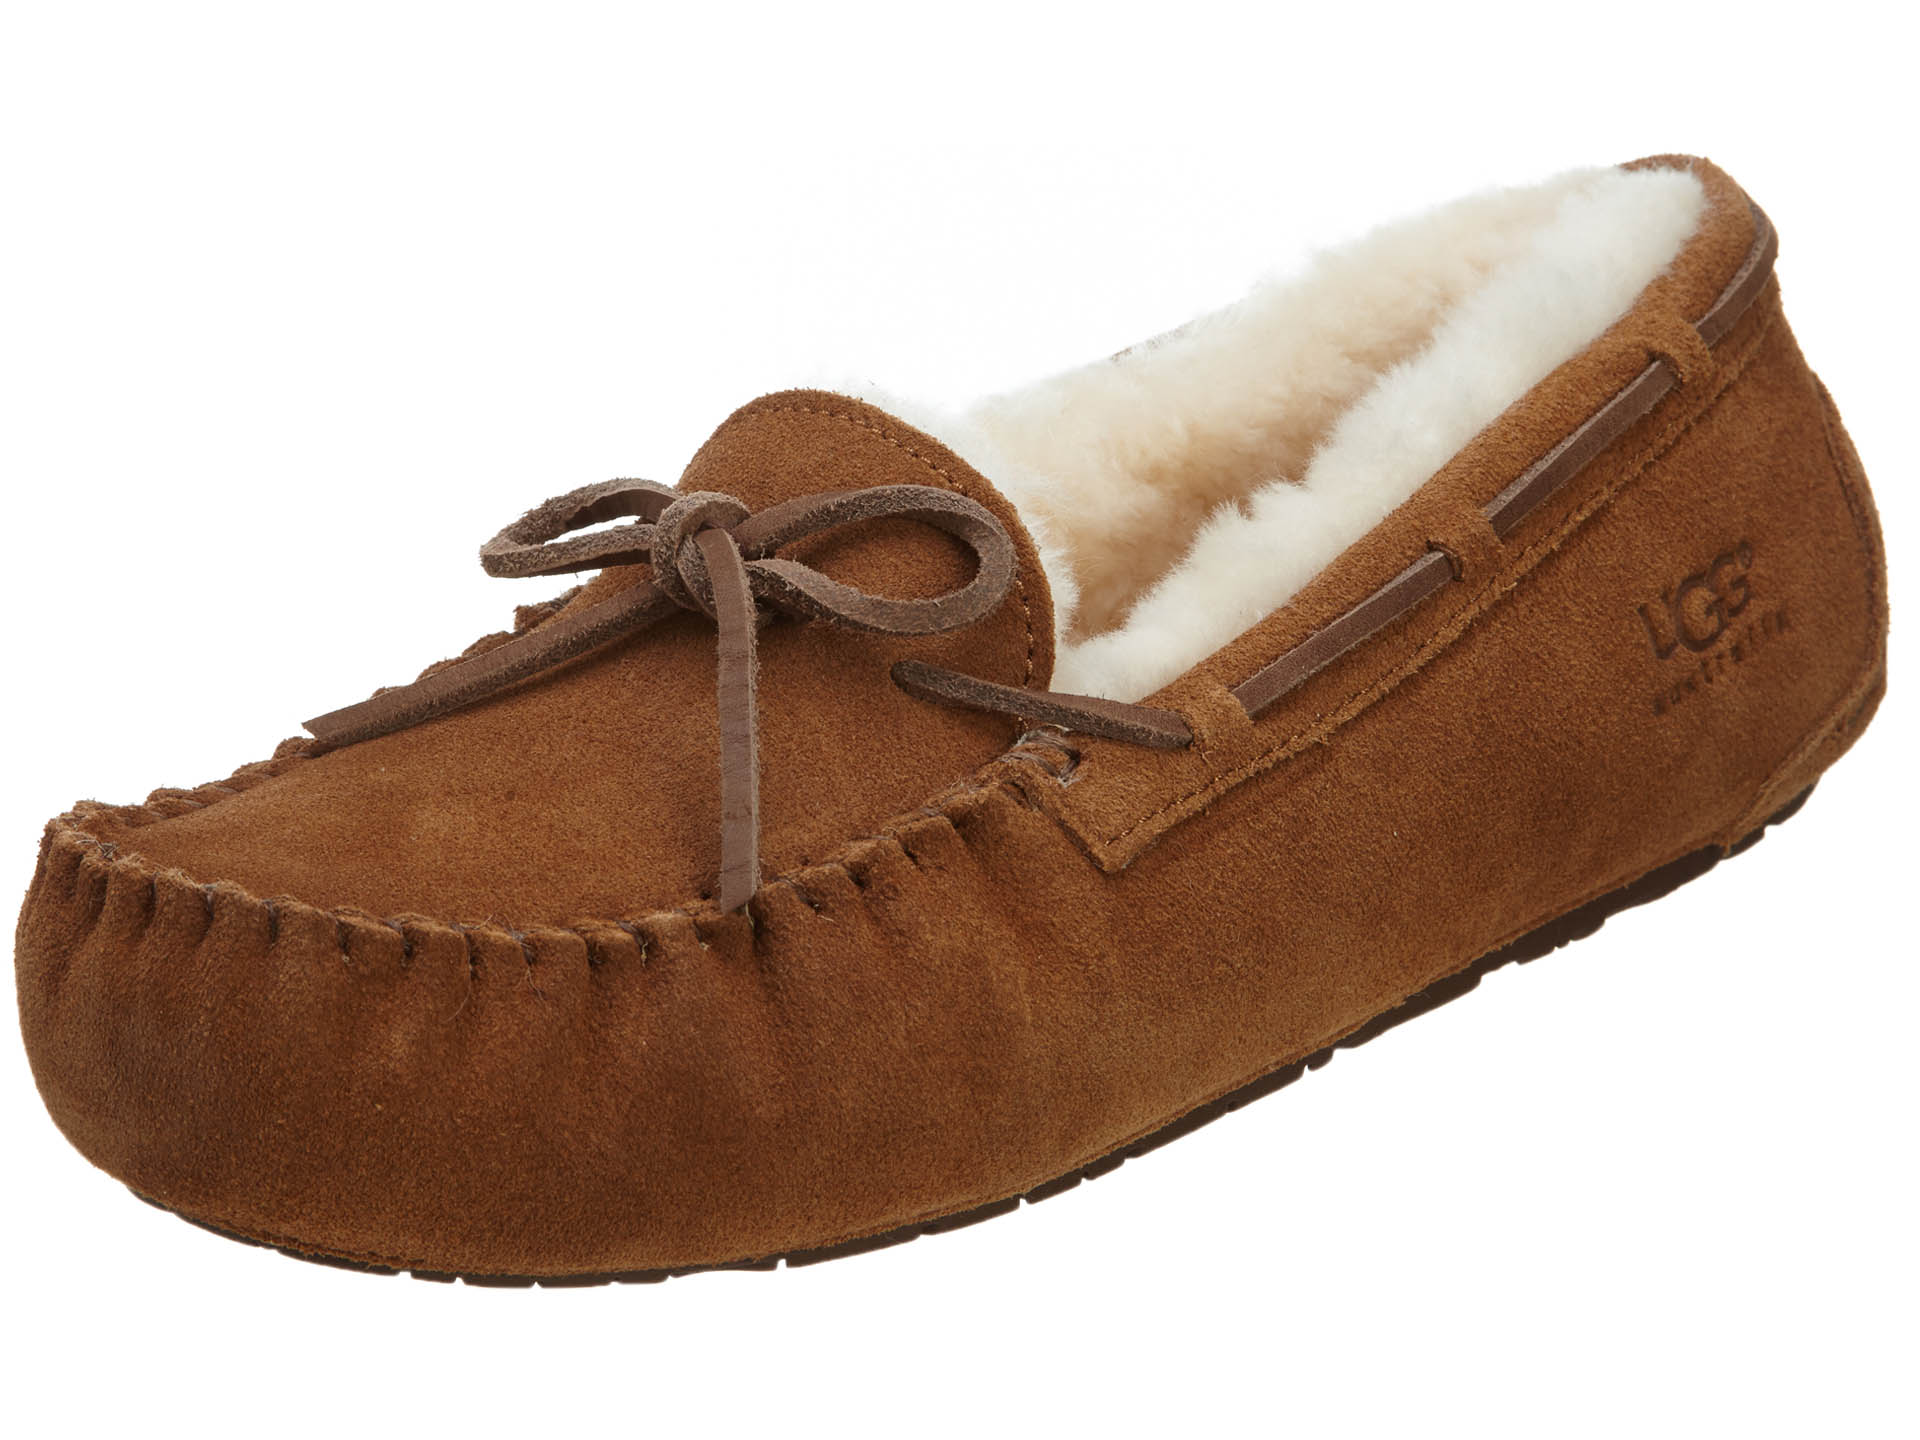 e5984796c7f Details about UGG Little Kids Dakota Slippers Chestnut 5296K